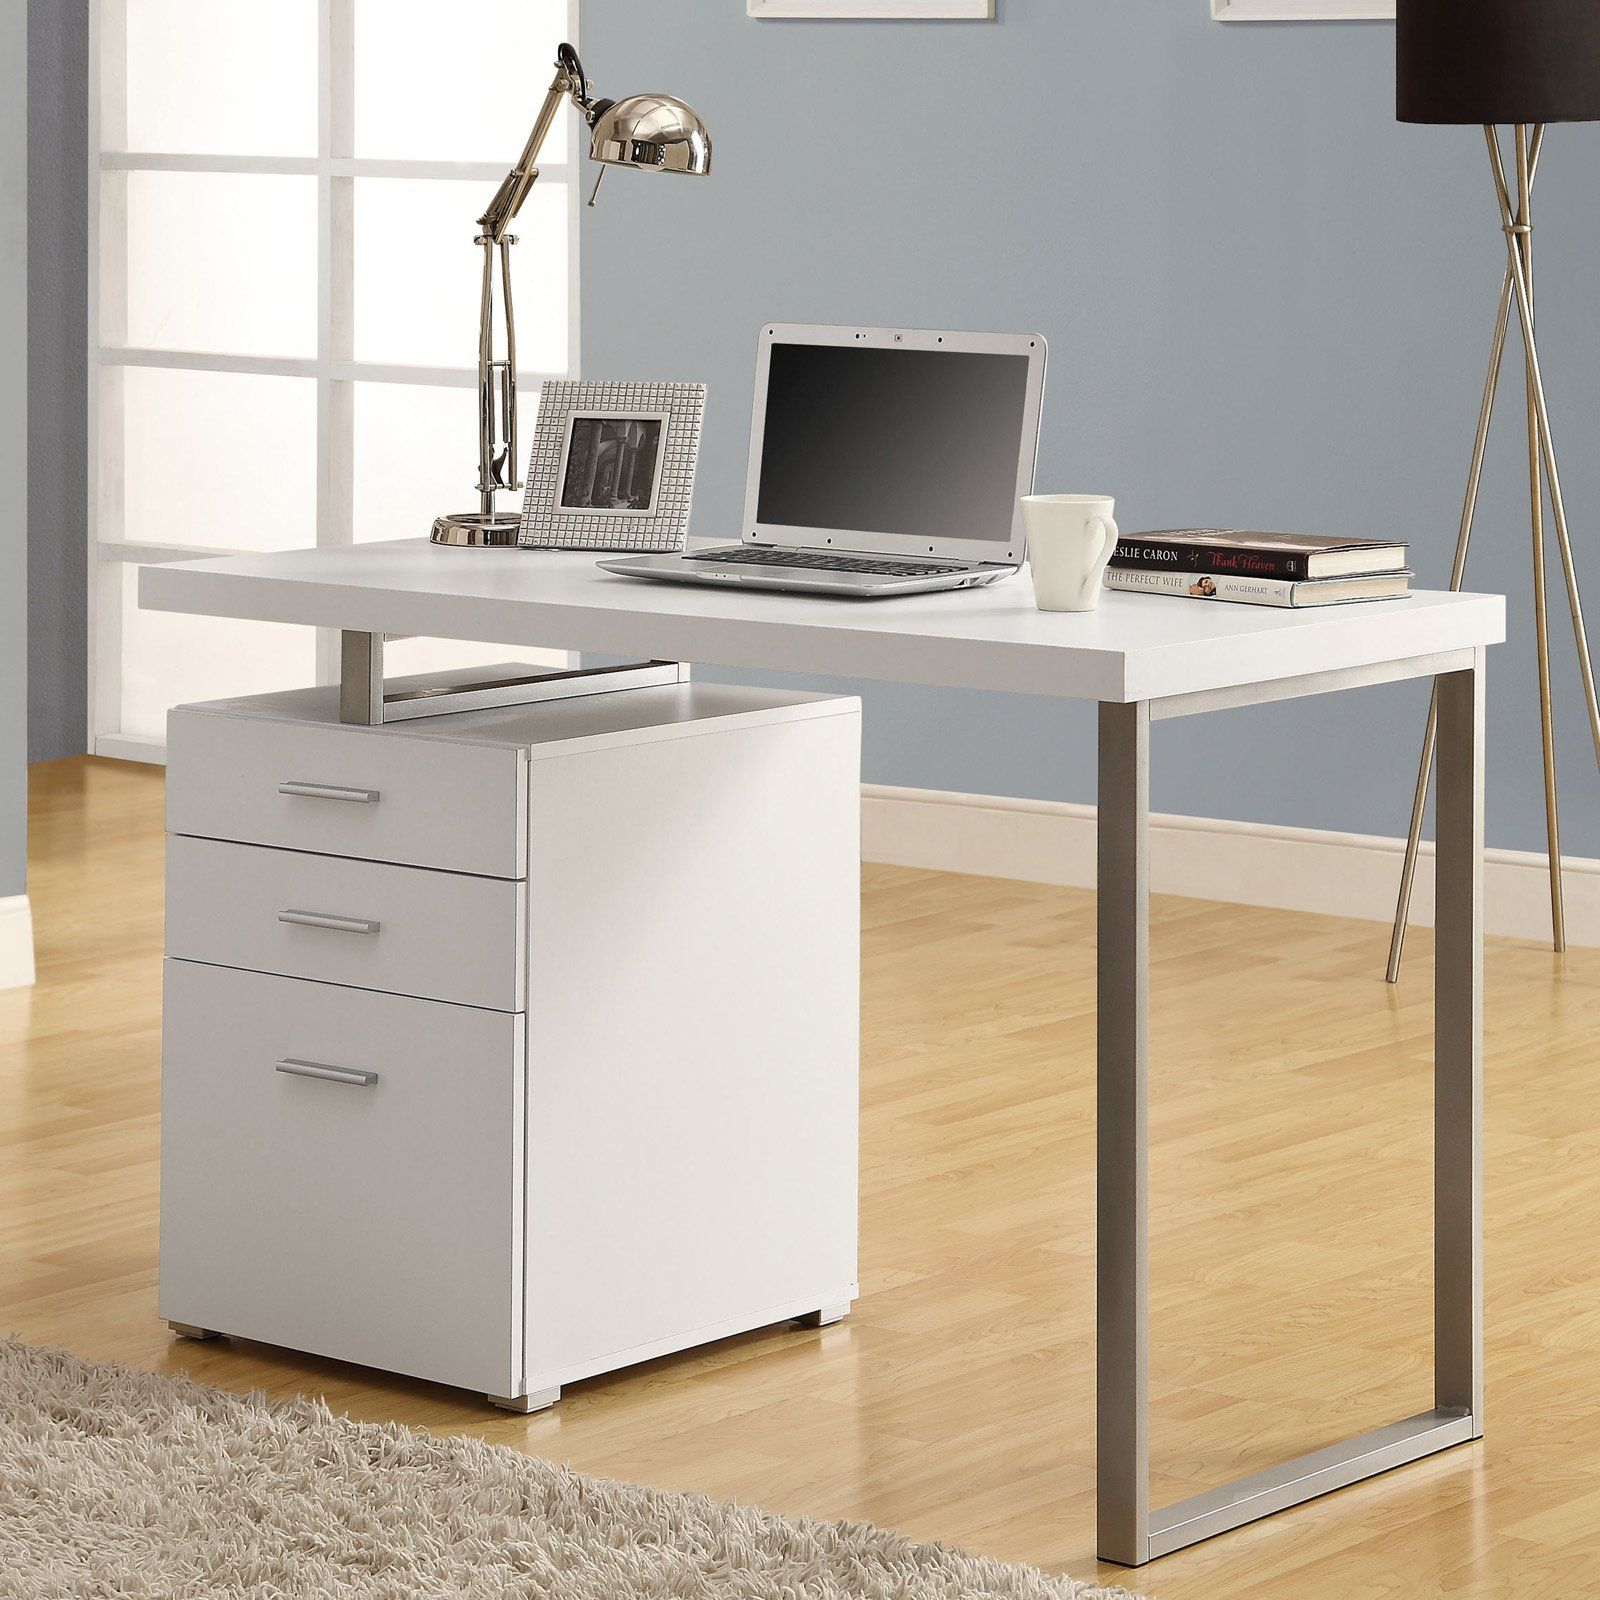 Monarch Hollow Core Left Or Right Facing 48 In. Desk   White   The